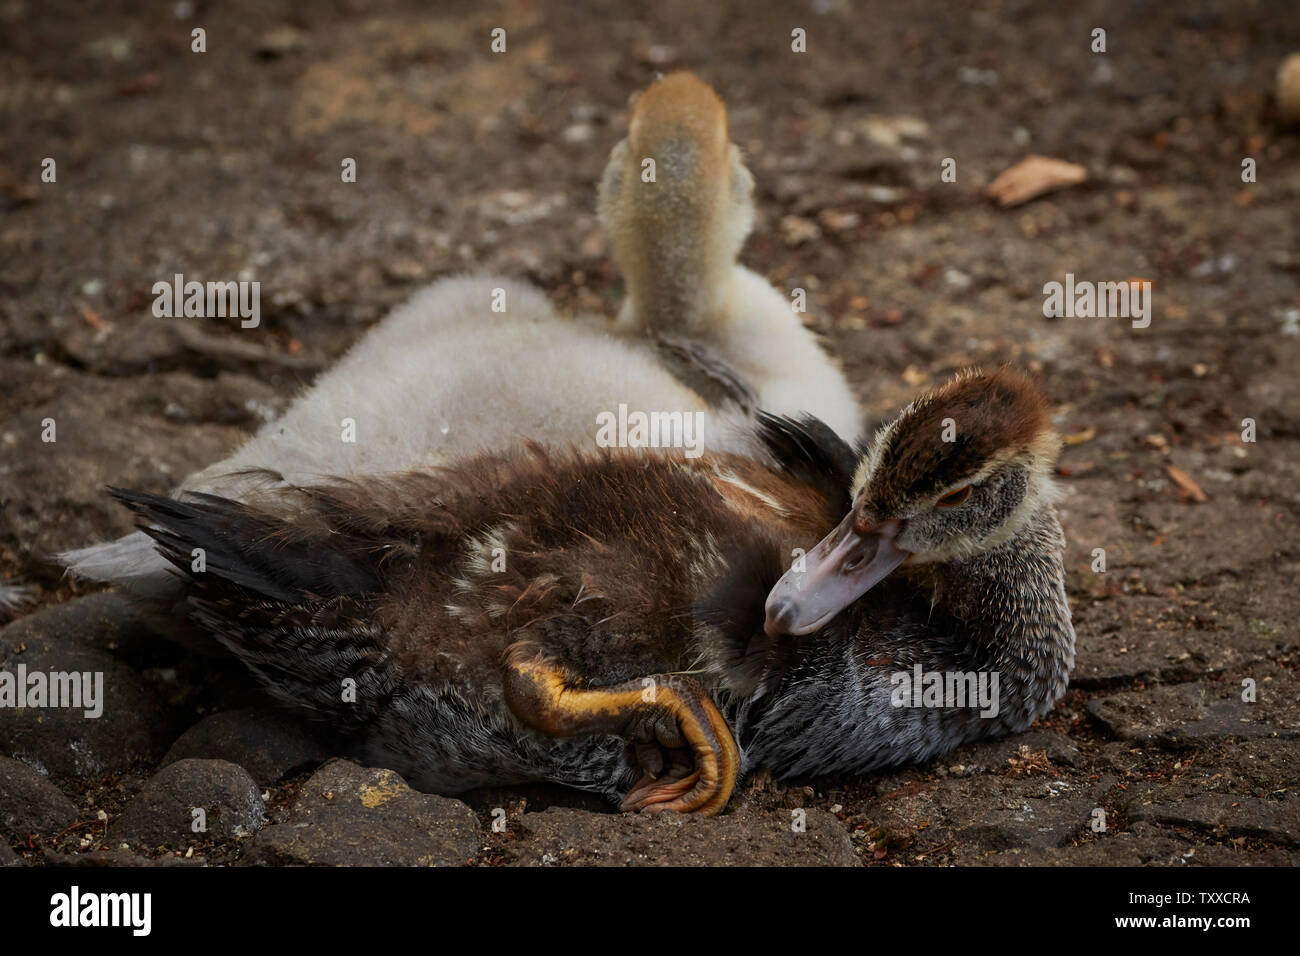 Wildfowl in the Municiple garden Funchal, Madeira, Portugal, European Union - Stock Image